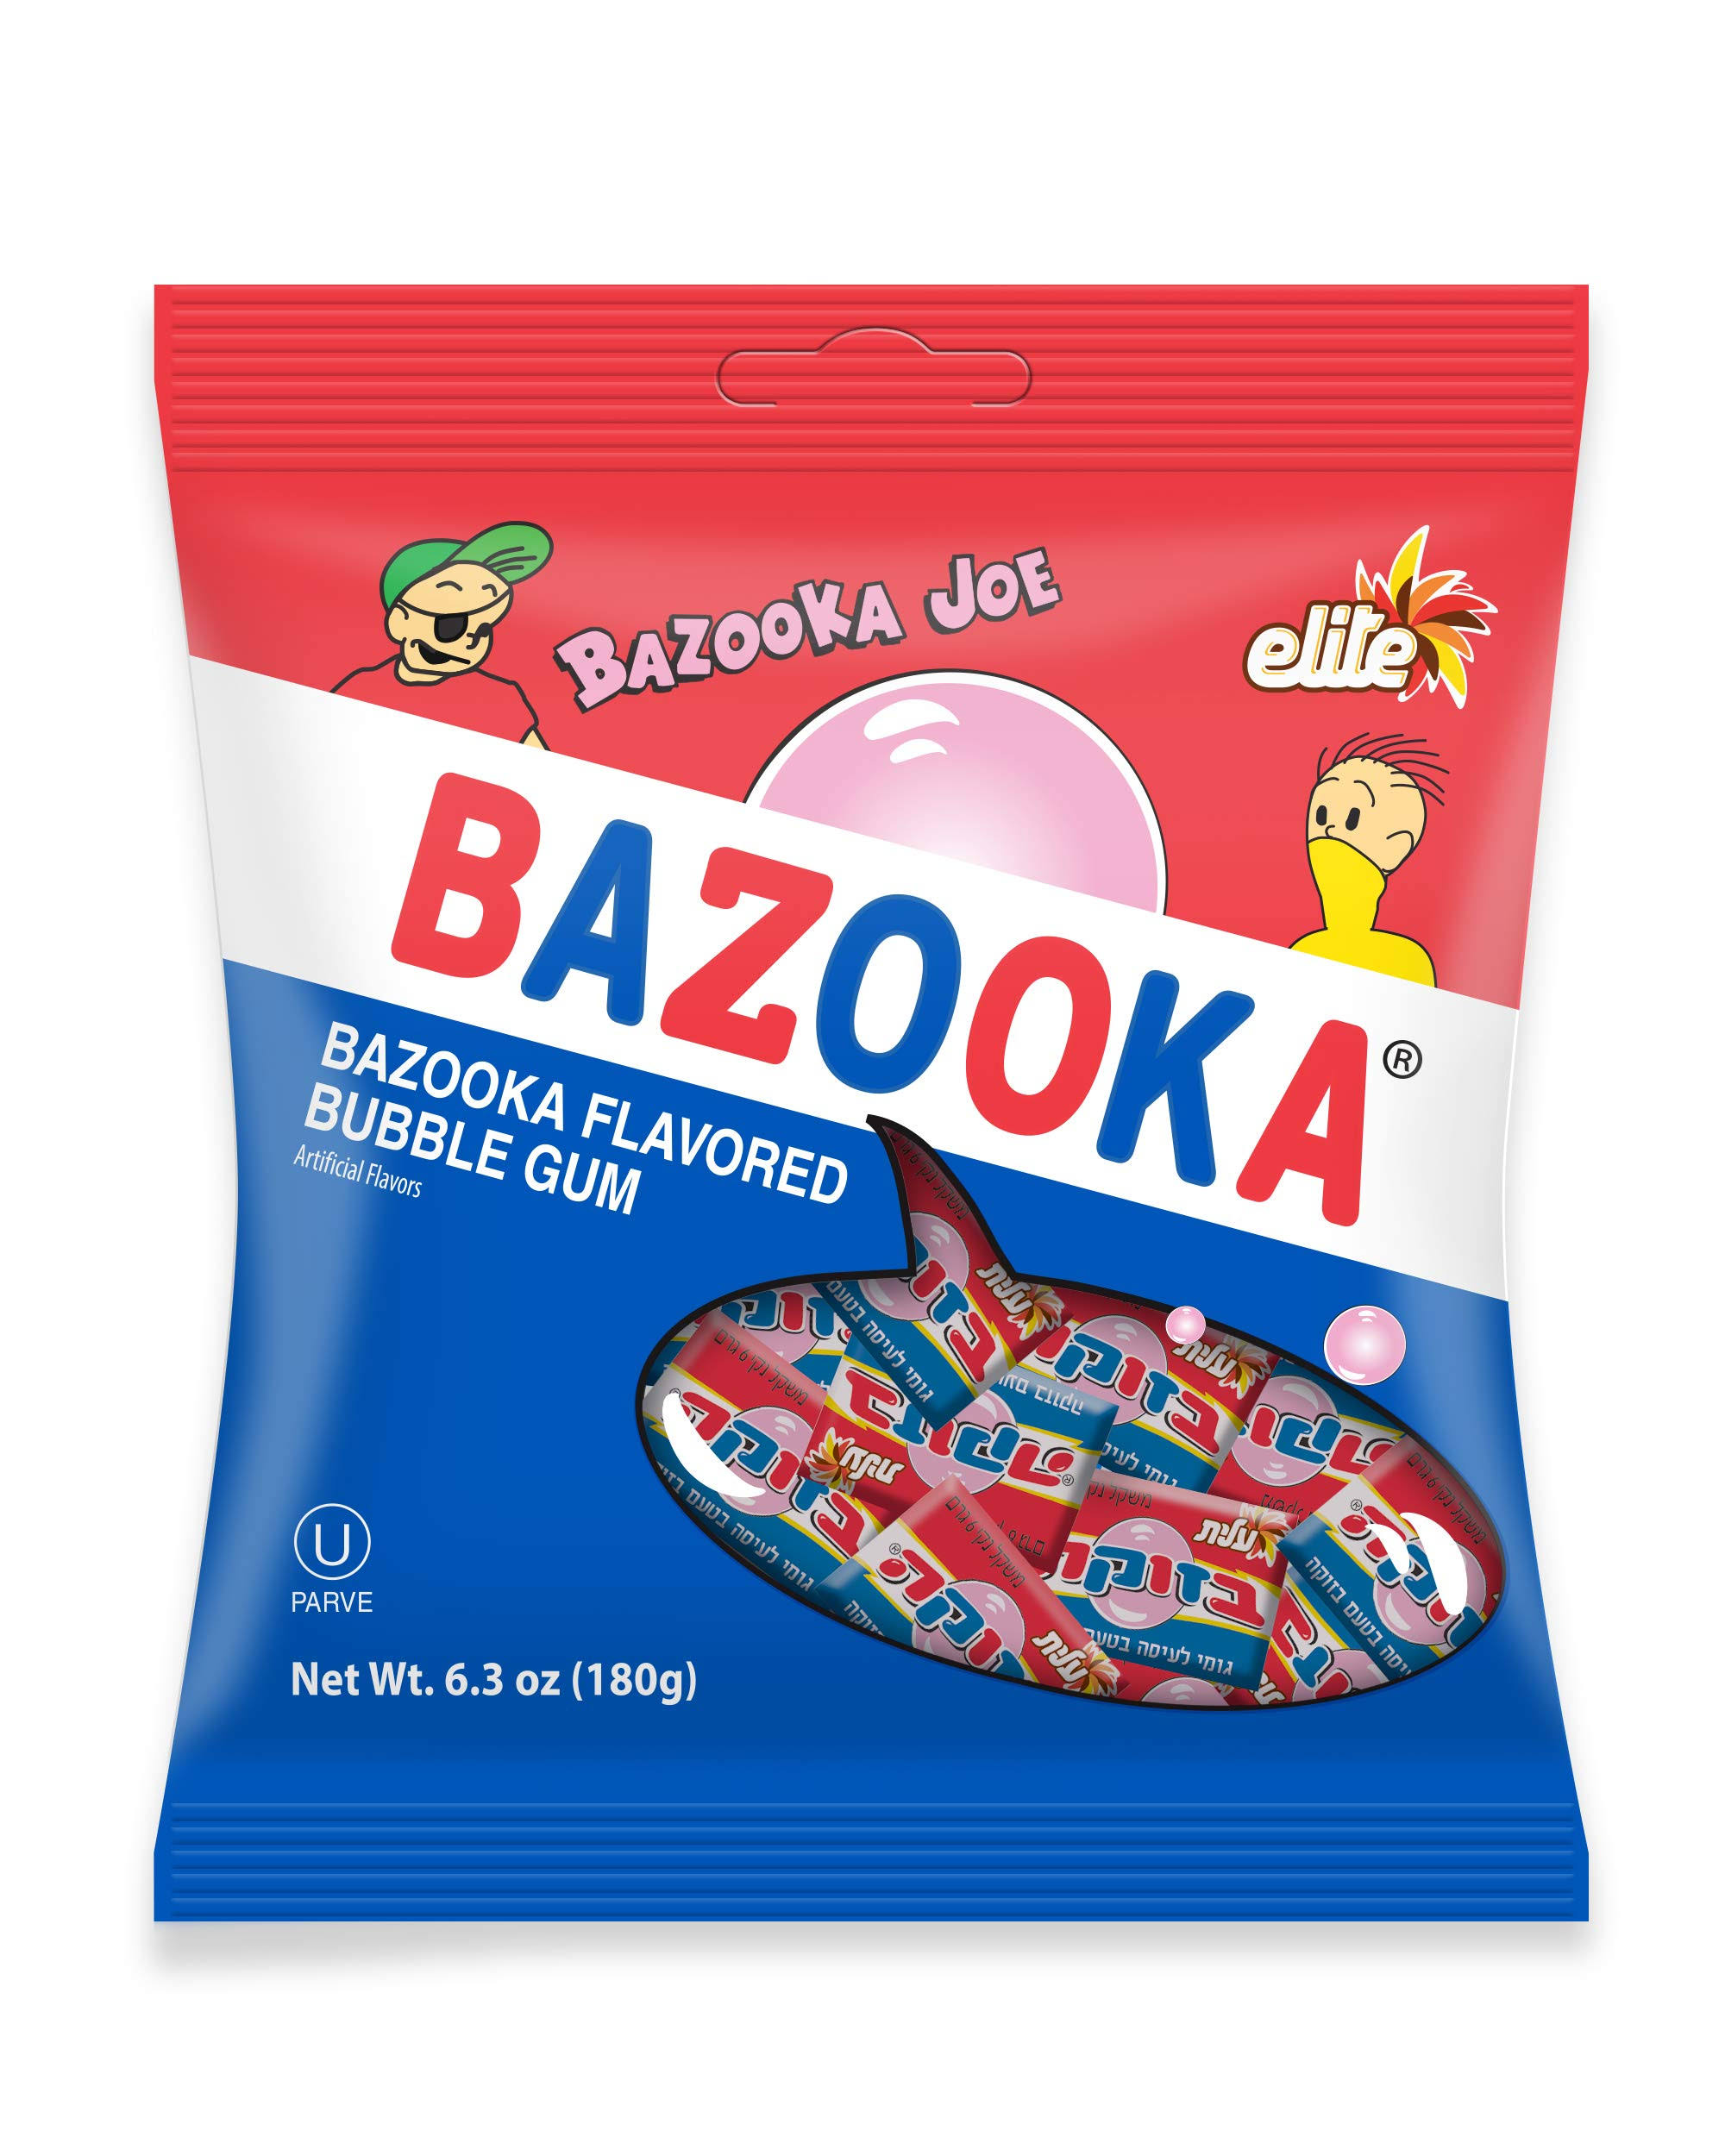 Strauss Elite Bazooka Joe Gum Bazooka Flavored